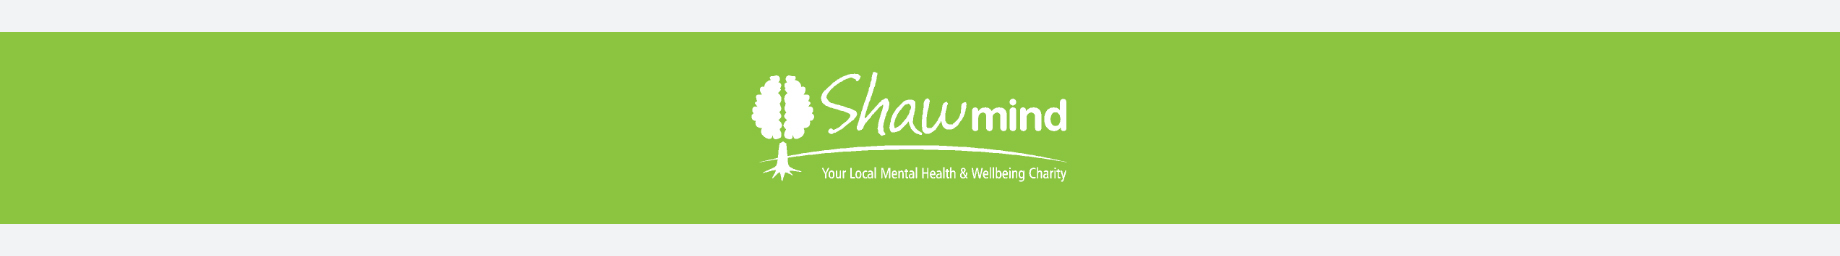 Shaw Mind - Your Local Mental Health & Wellbeing Charity